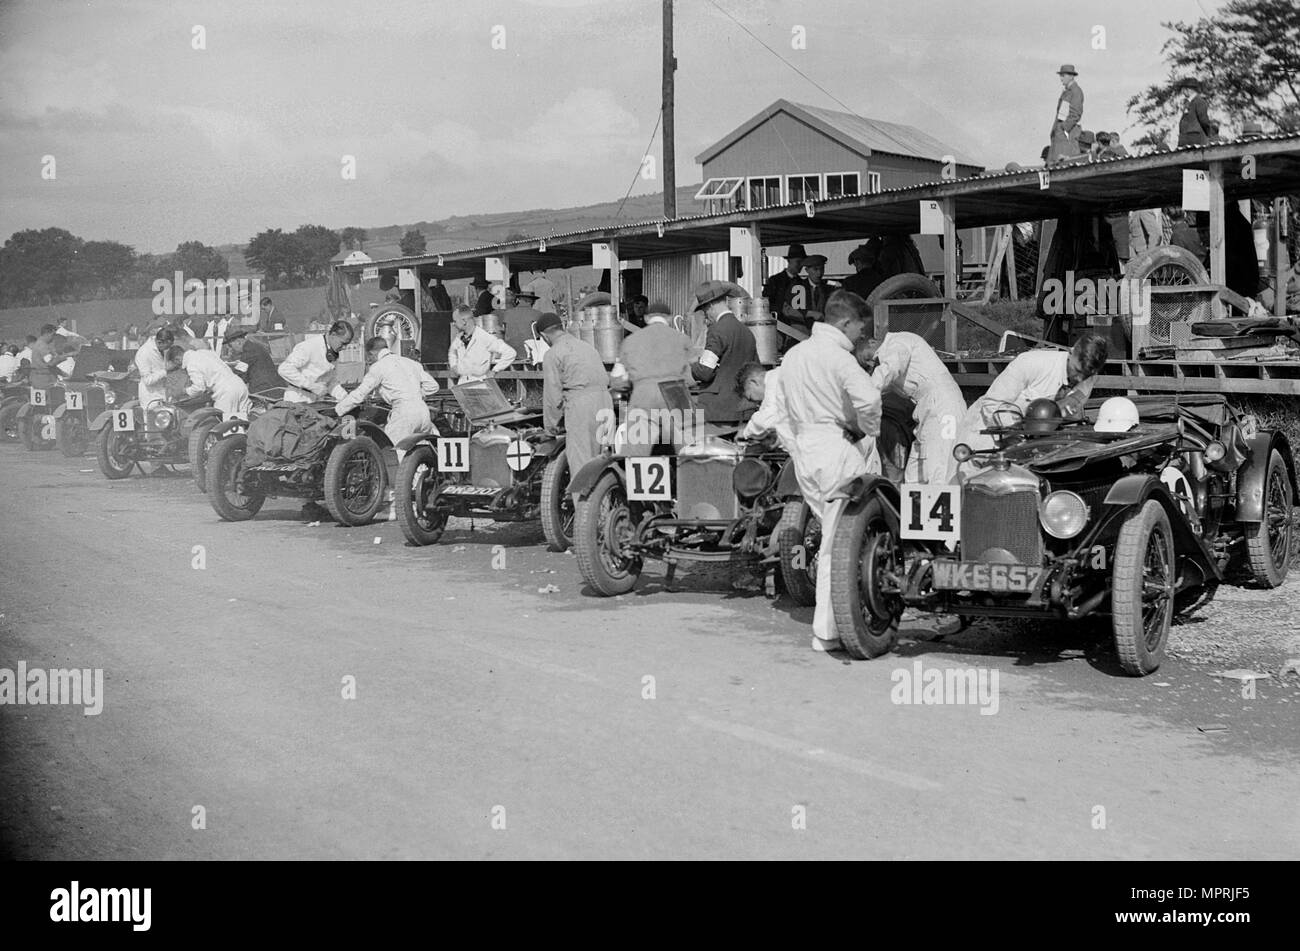 Triumph and Riley cars in the pits at the RAC TT Race, Ards Circuit, Belfast, 1929 Artist: Bill Brunell. - Stock Image